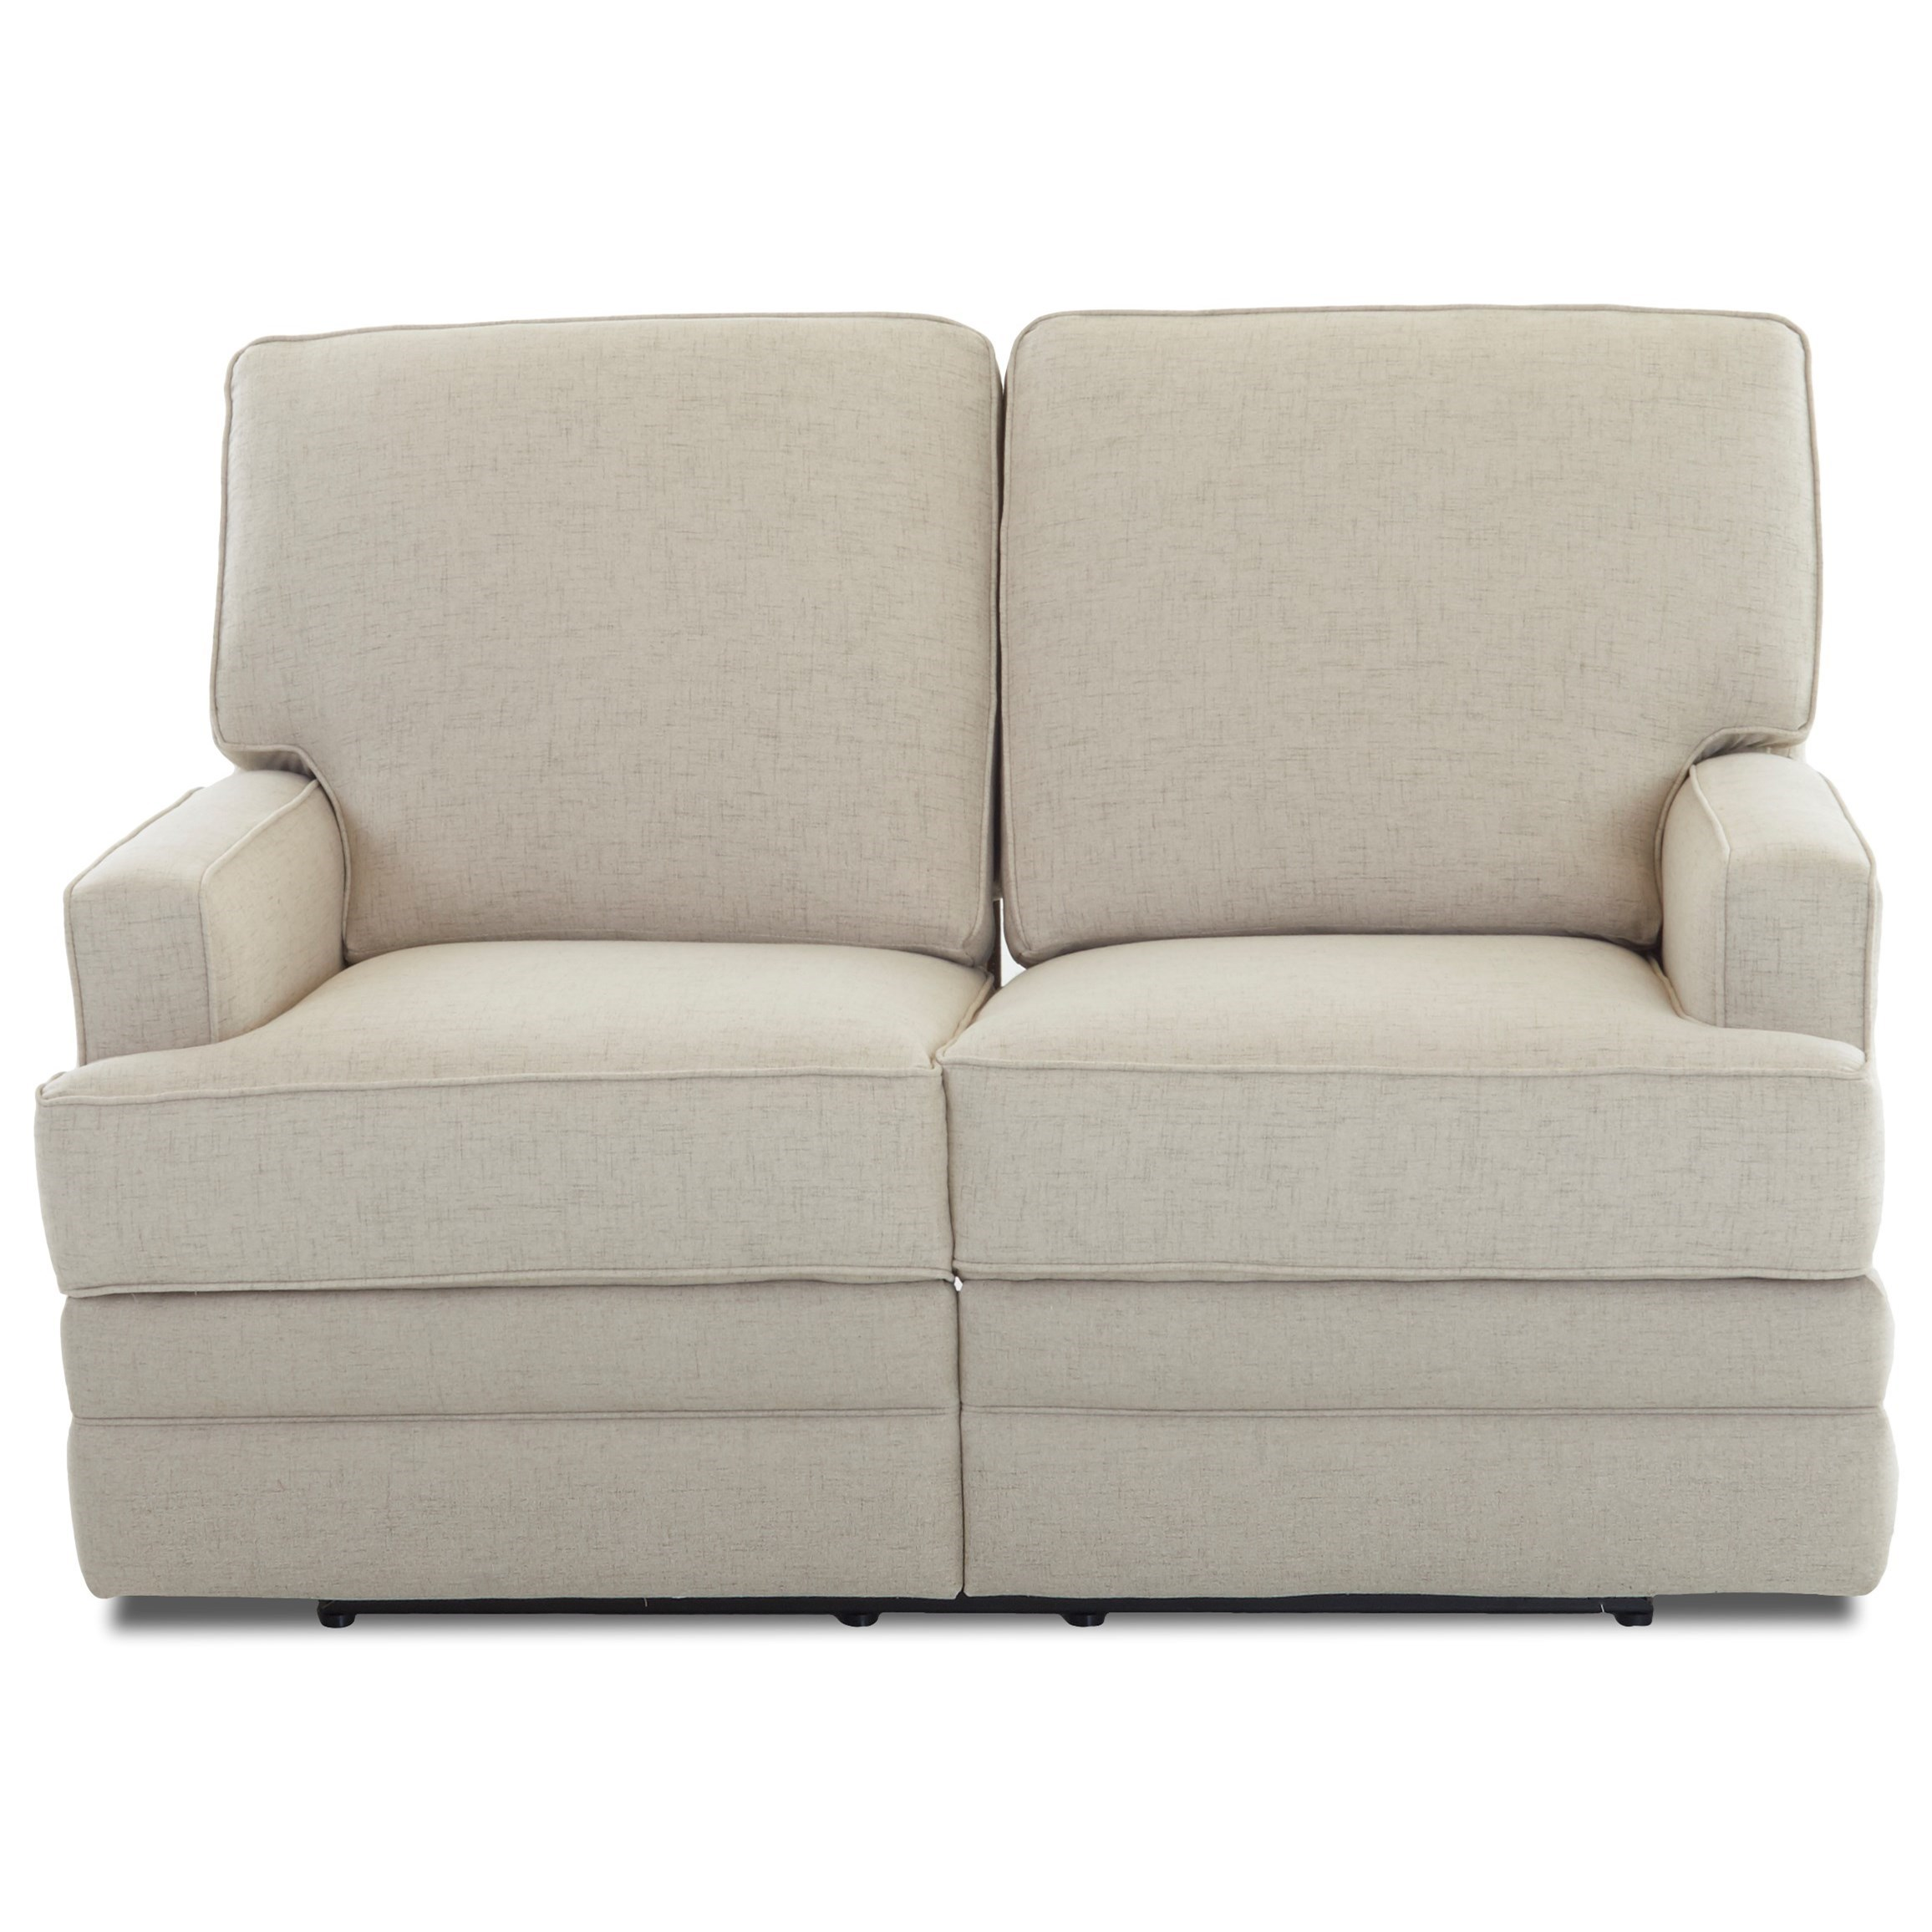 Chapman Casual Power Reclining Loveseat by Klaussner at Johnny Janosik